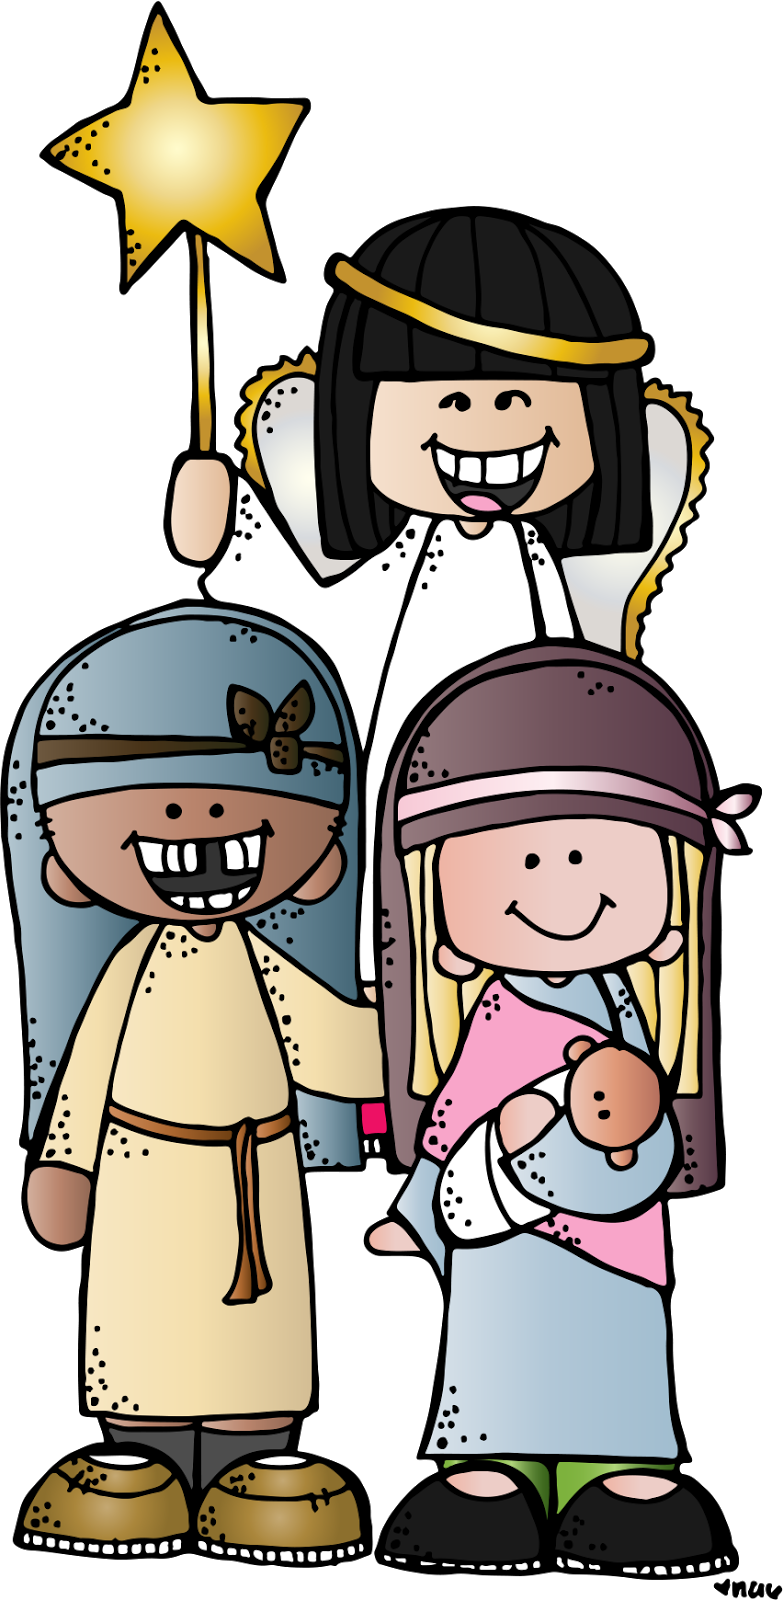 Jesus mary and joseph clipart clip art freeuse library Melonheadz LDS illustrating | melonheadz | Pinterest | Christmas eve ... clip art freeuse library